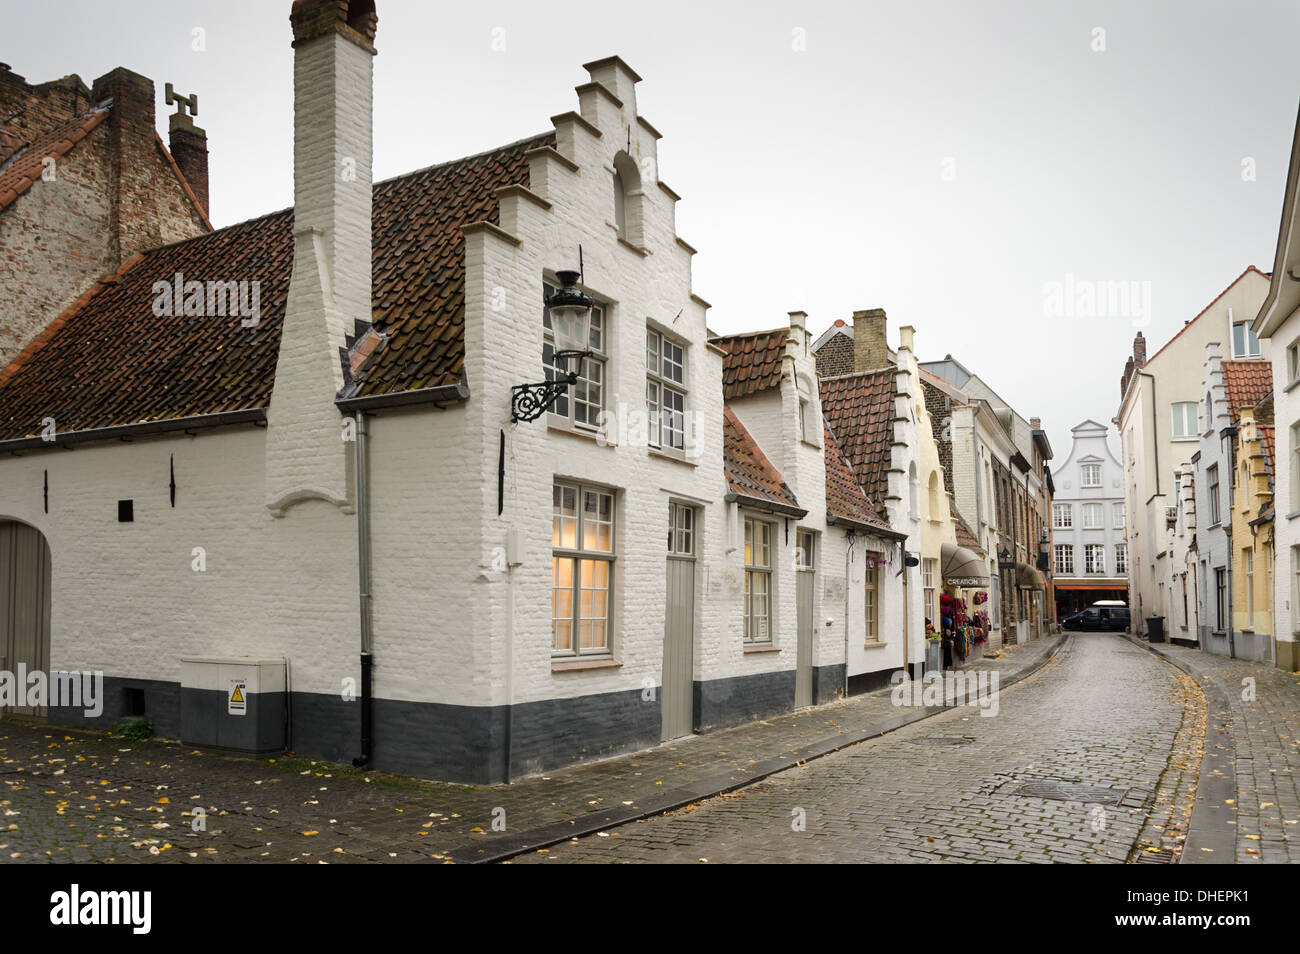 typical medieval buildings, Bruges - Stock Image